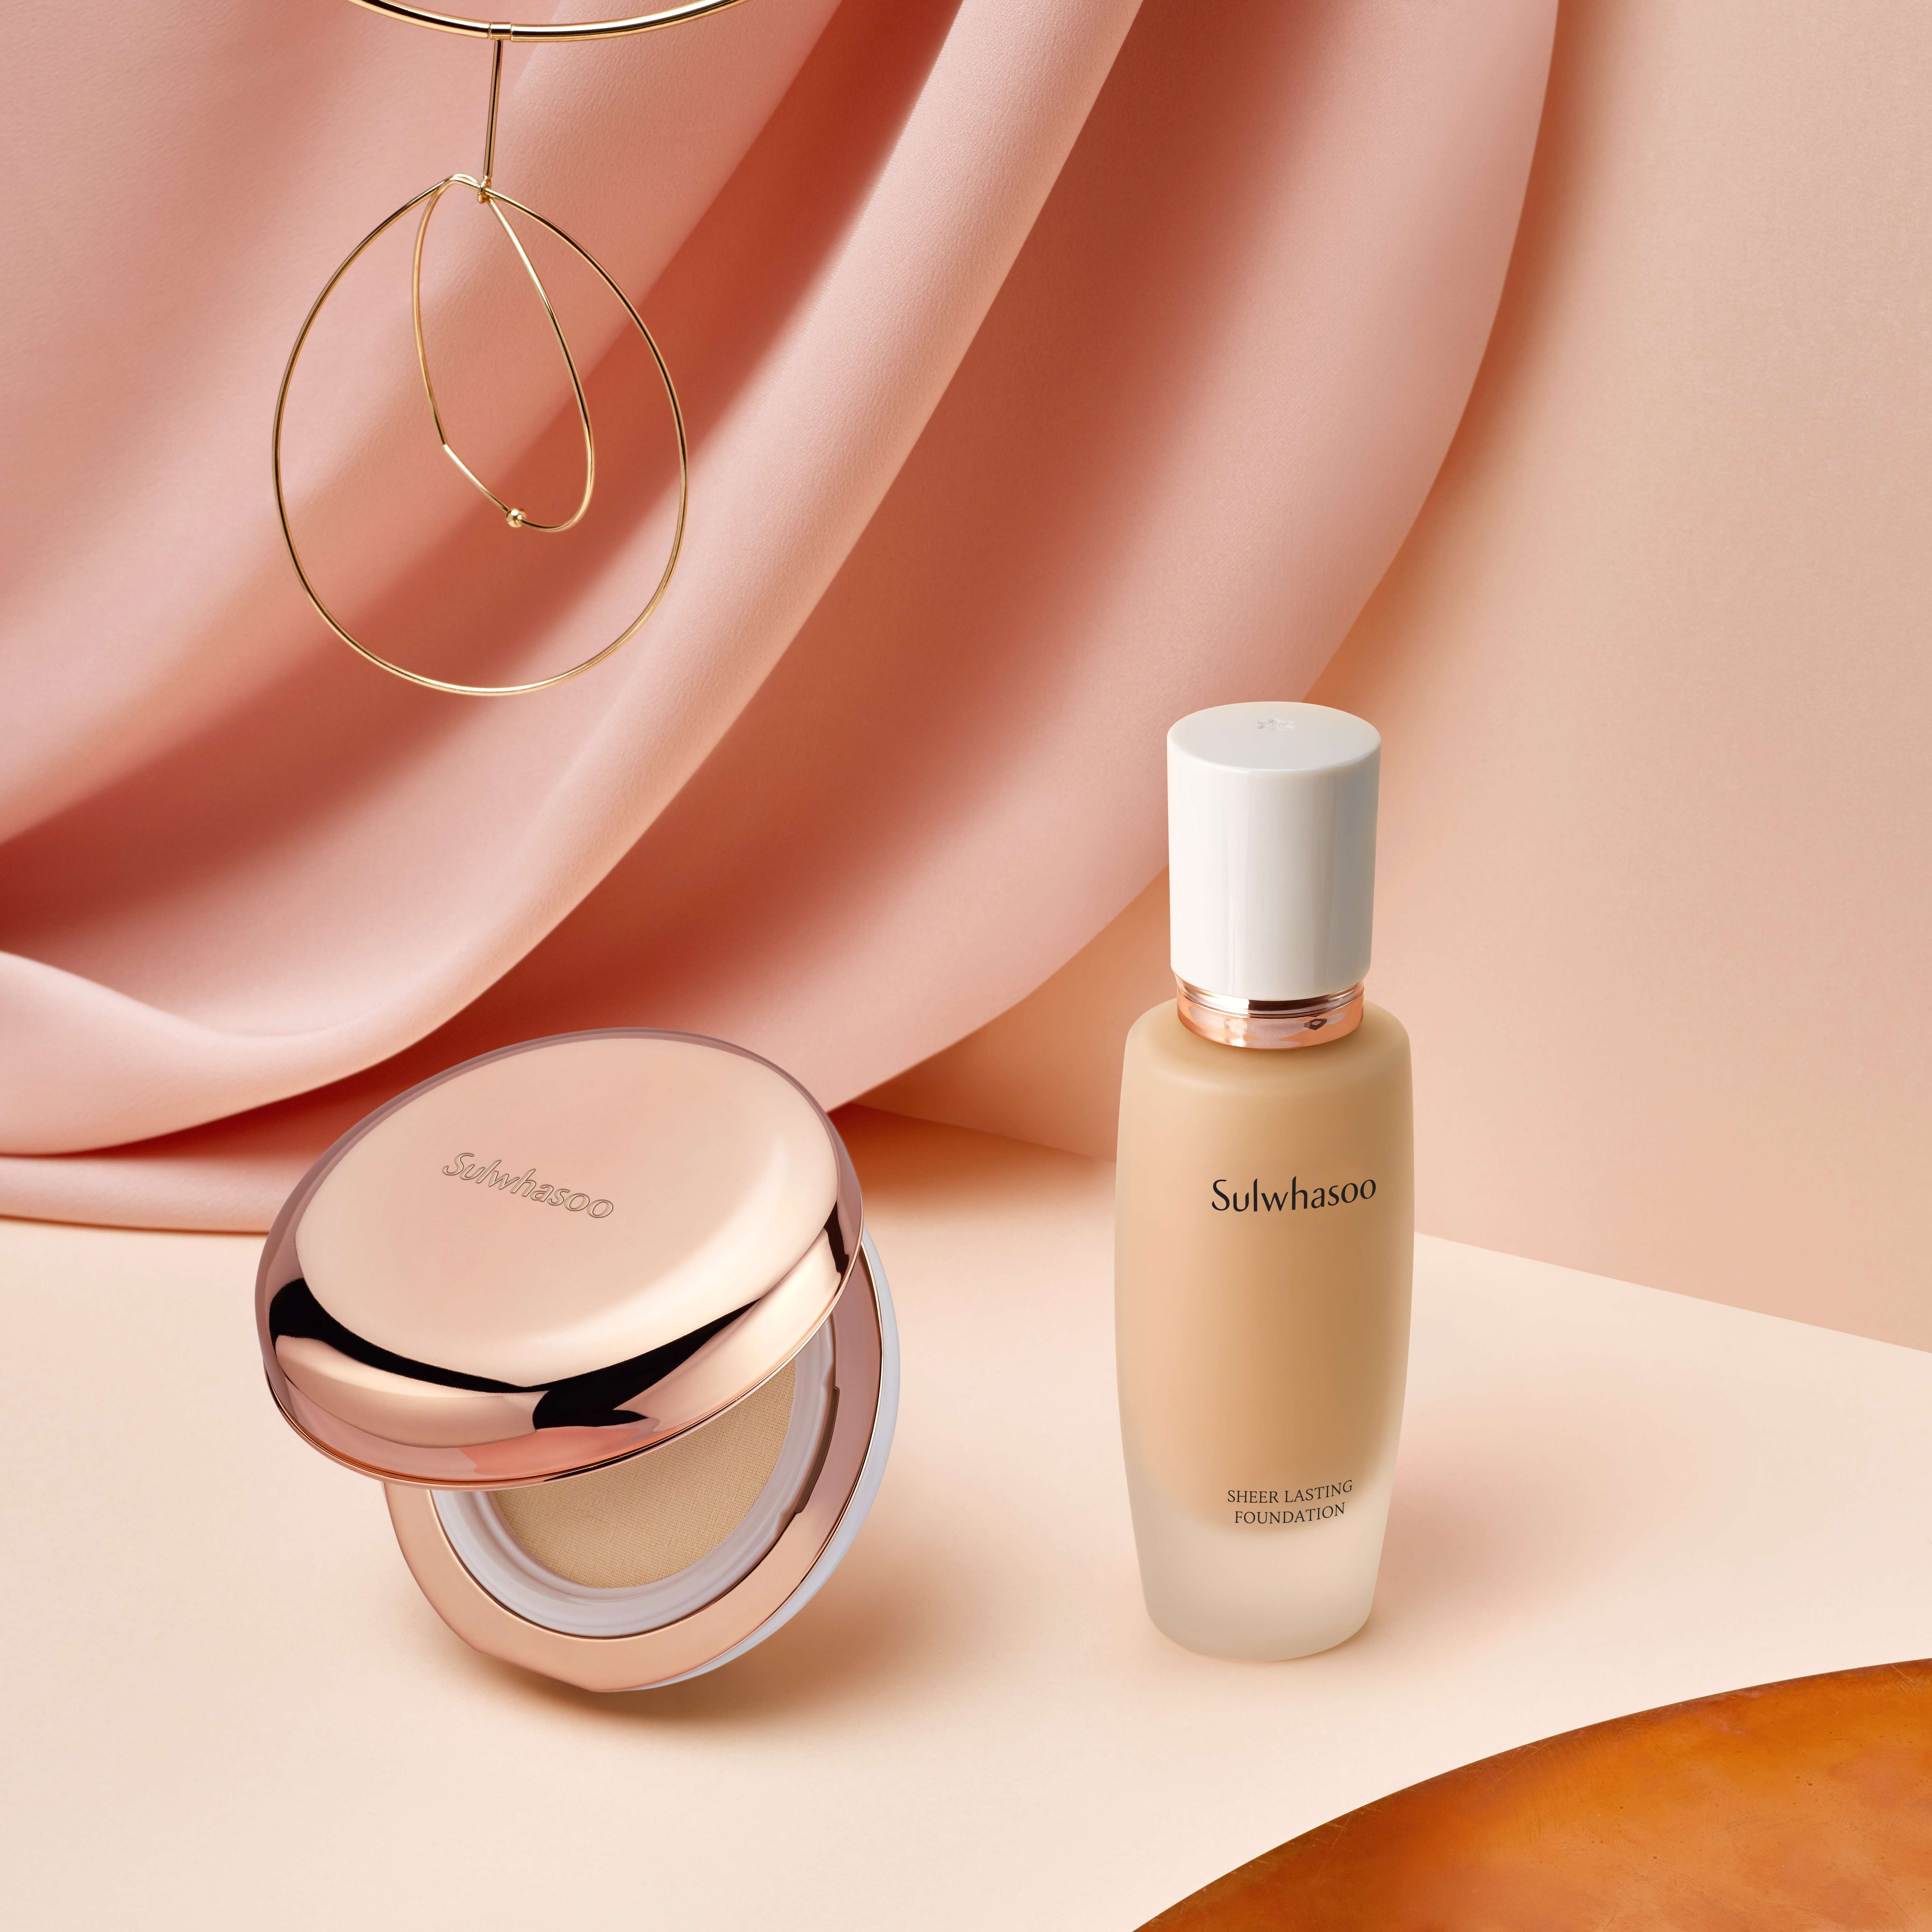 Sulwhasoo Sheer Lasting Gel Cushion & Foundation 5